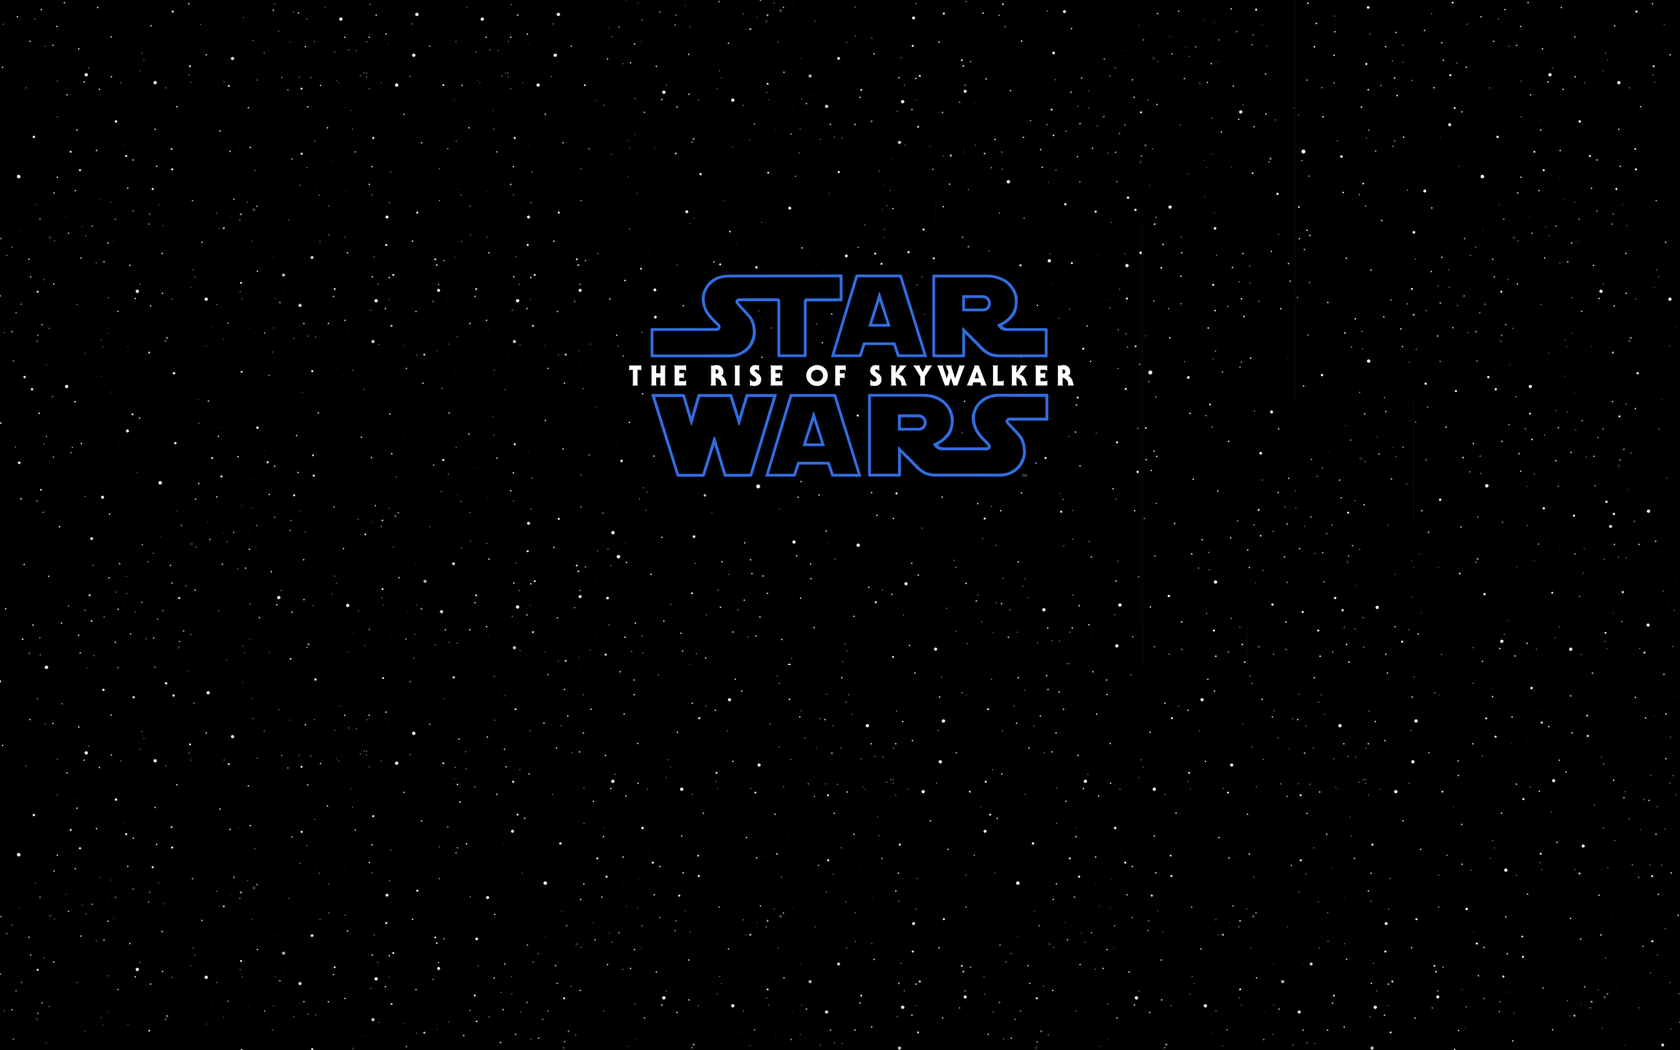 Star Wars The Rise Of Skywalker Wallpapers Free Pictures On Greepx